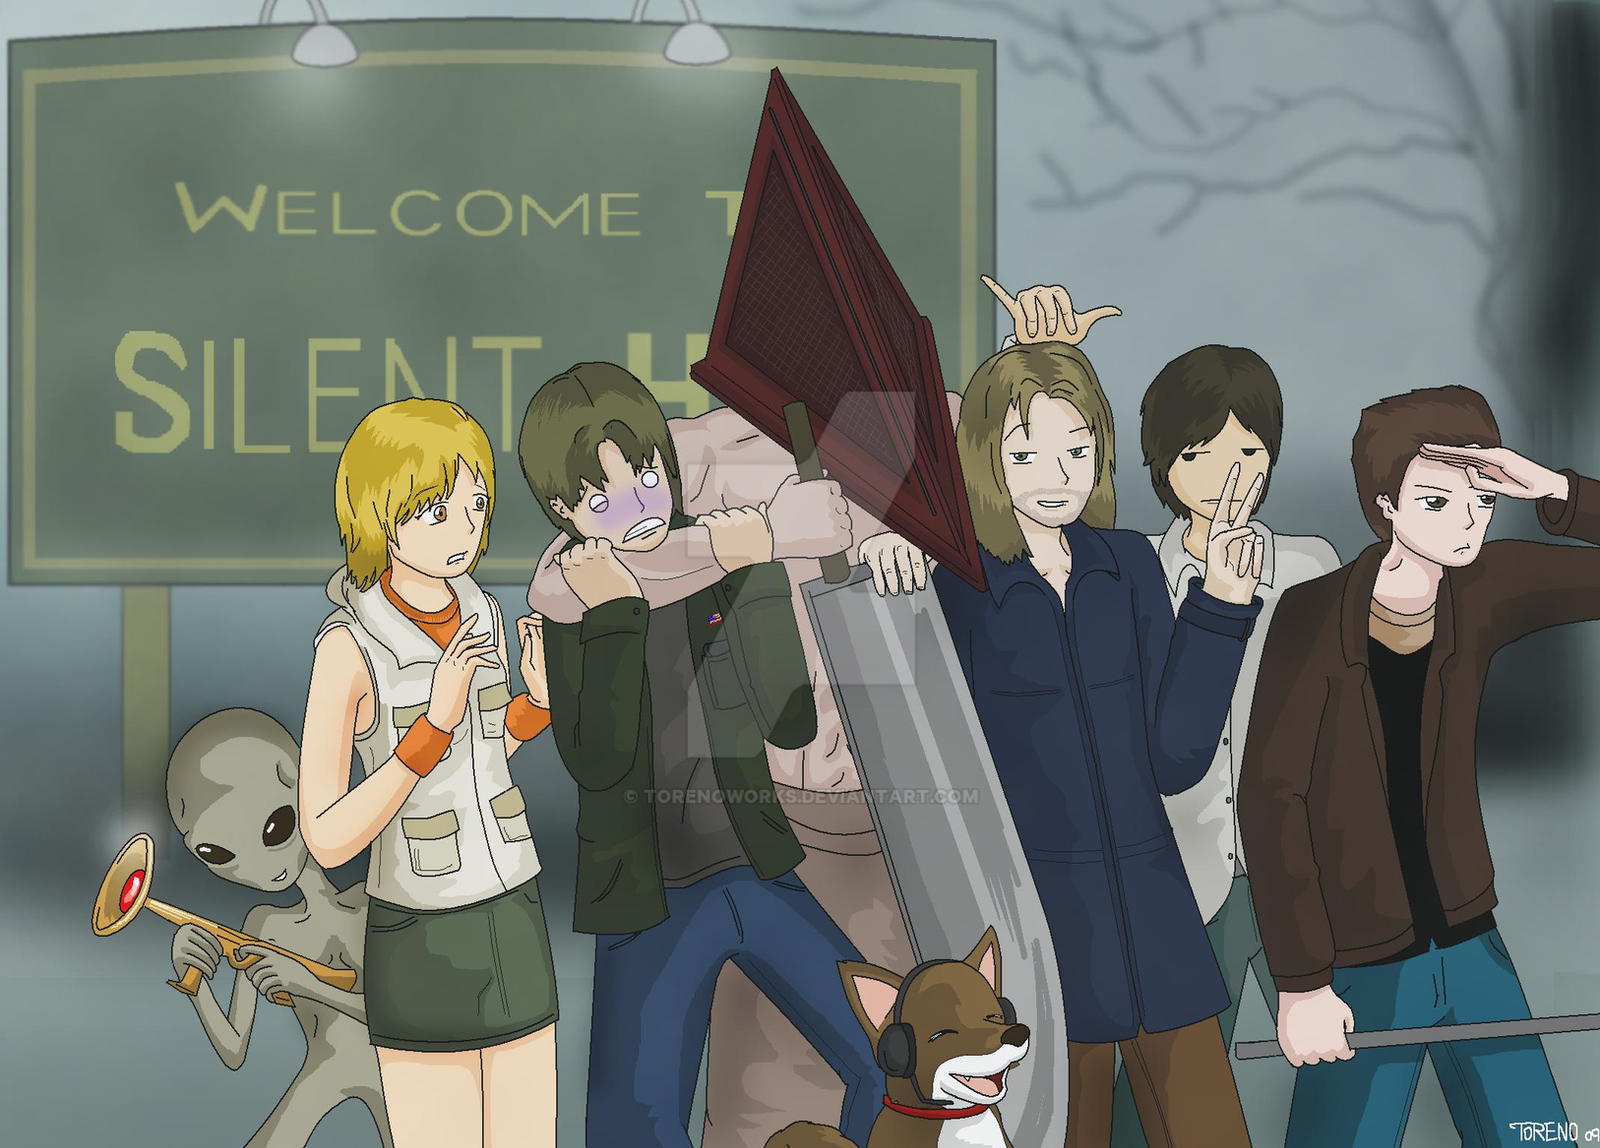 Welcome to Silent Hill by TorenoWorks